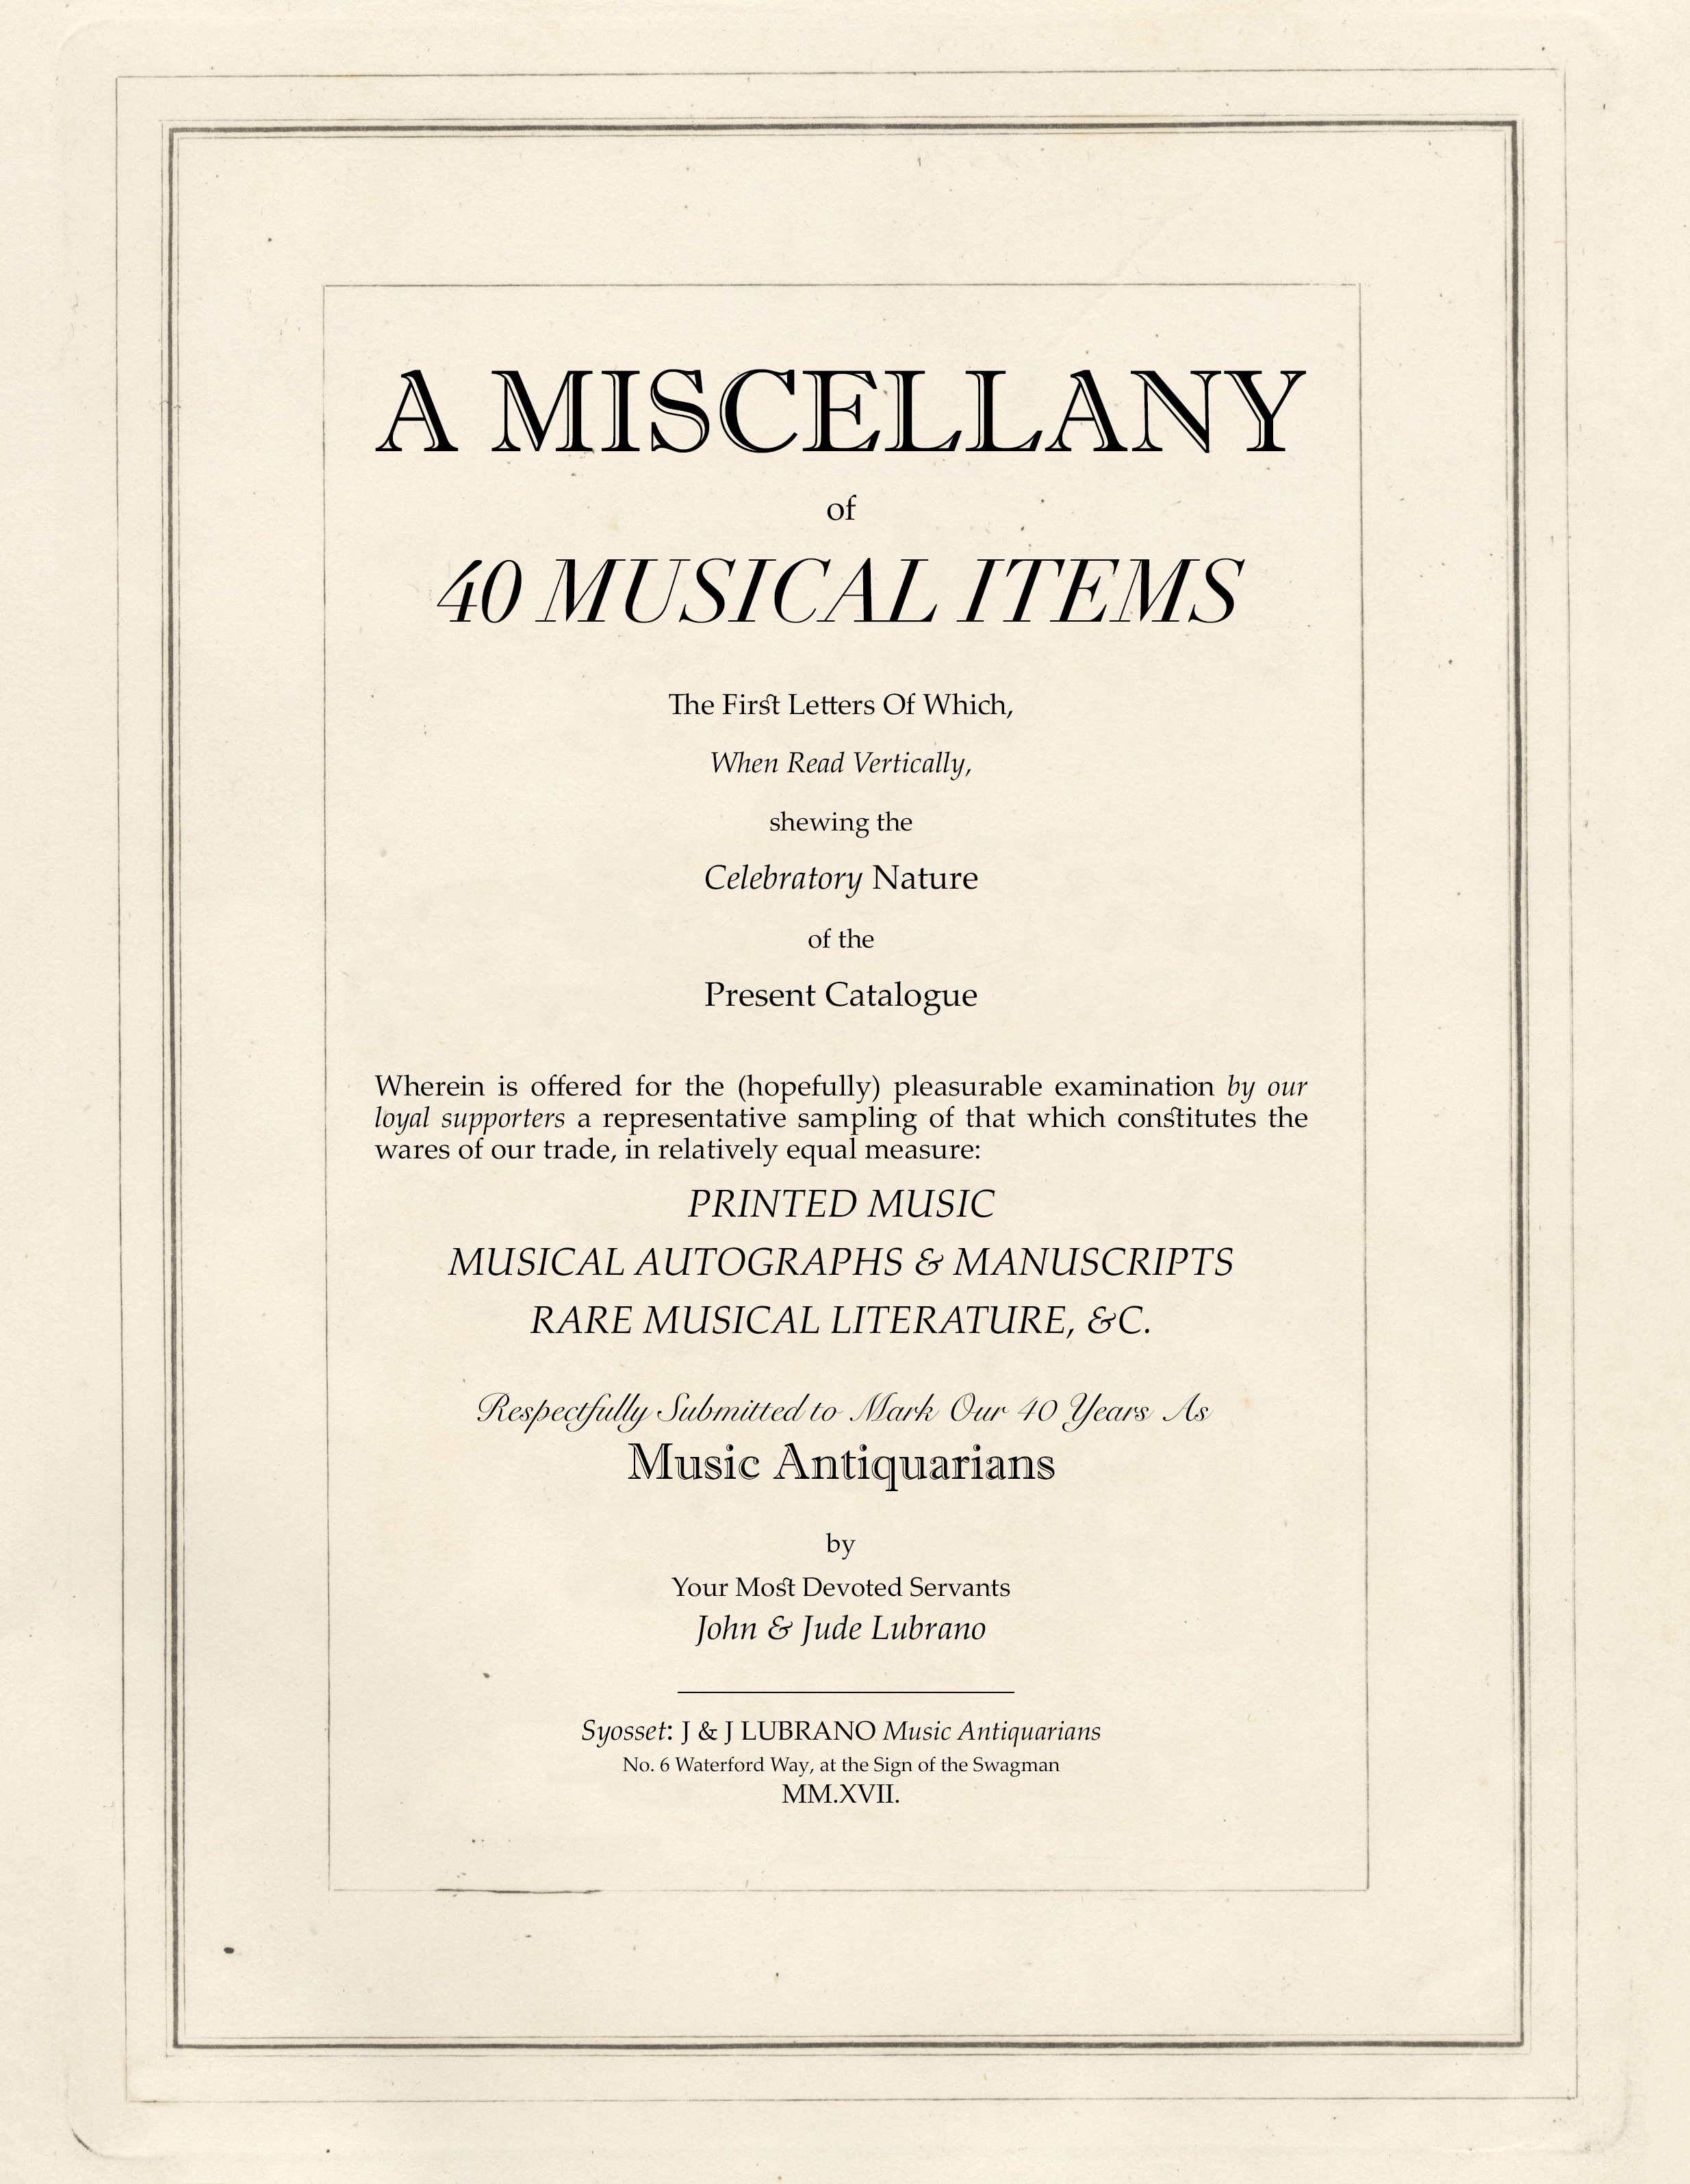 A Miscellany of 40 Musical Items